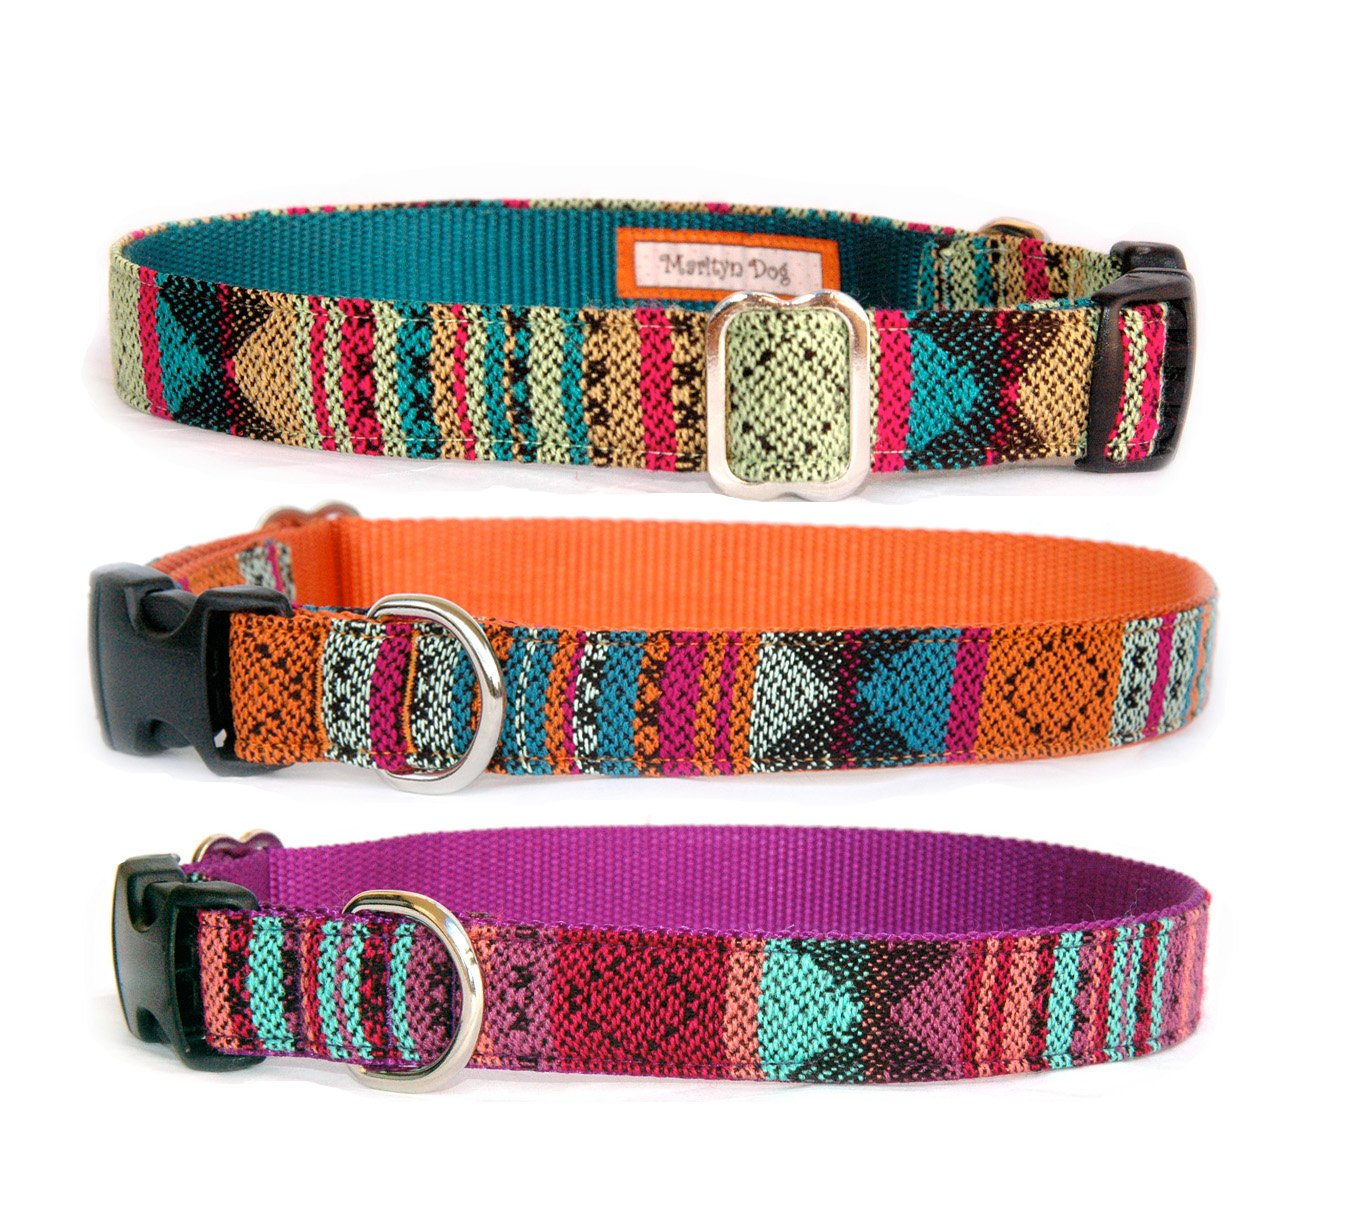 Home collars blueberry pet dog collar nautical flags inspired -  Bohemian Southwest Navajo Tribal Native American Influenced Designer Dog Collar For Small Dogs And Large Dogs Purple Orange Dog Collar Pet Supplies